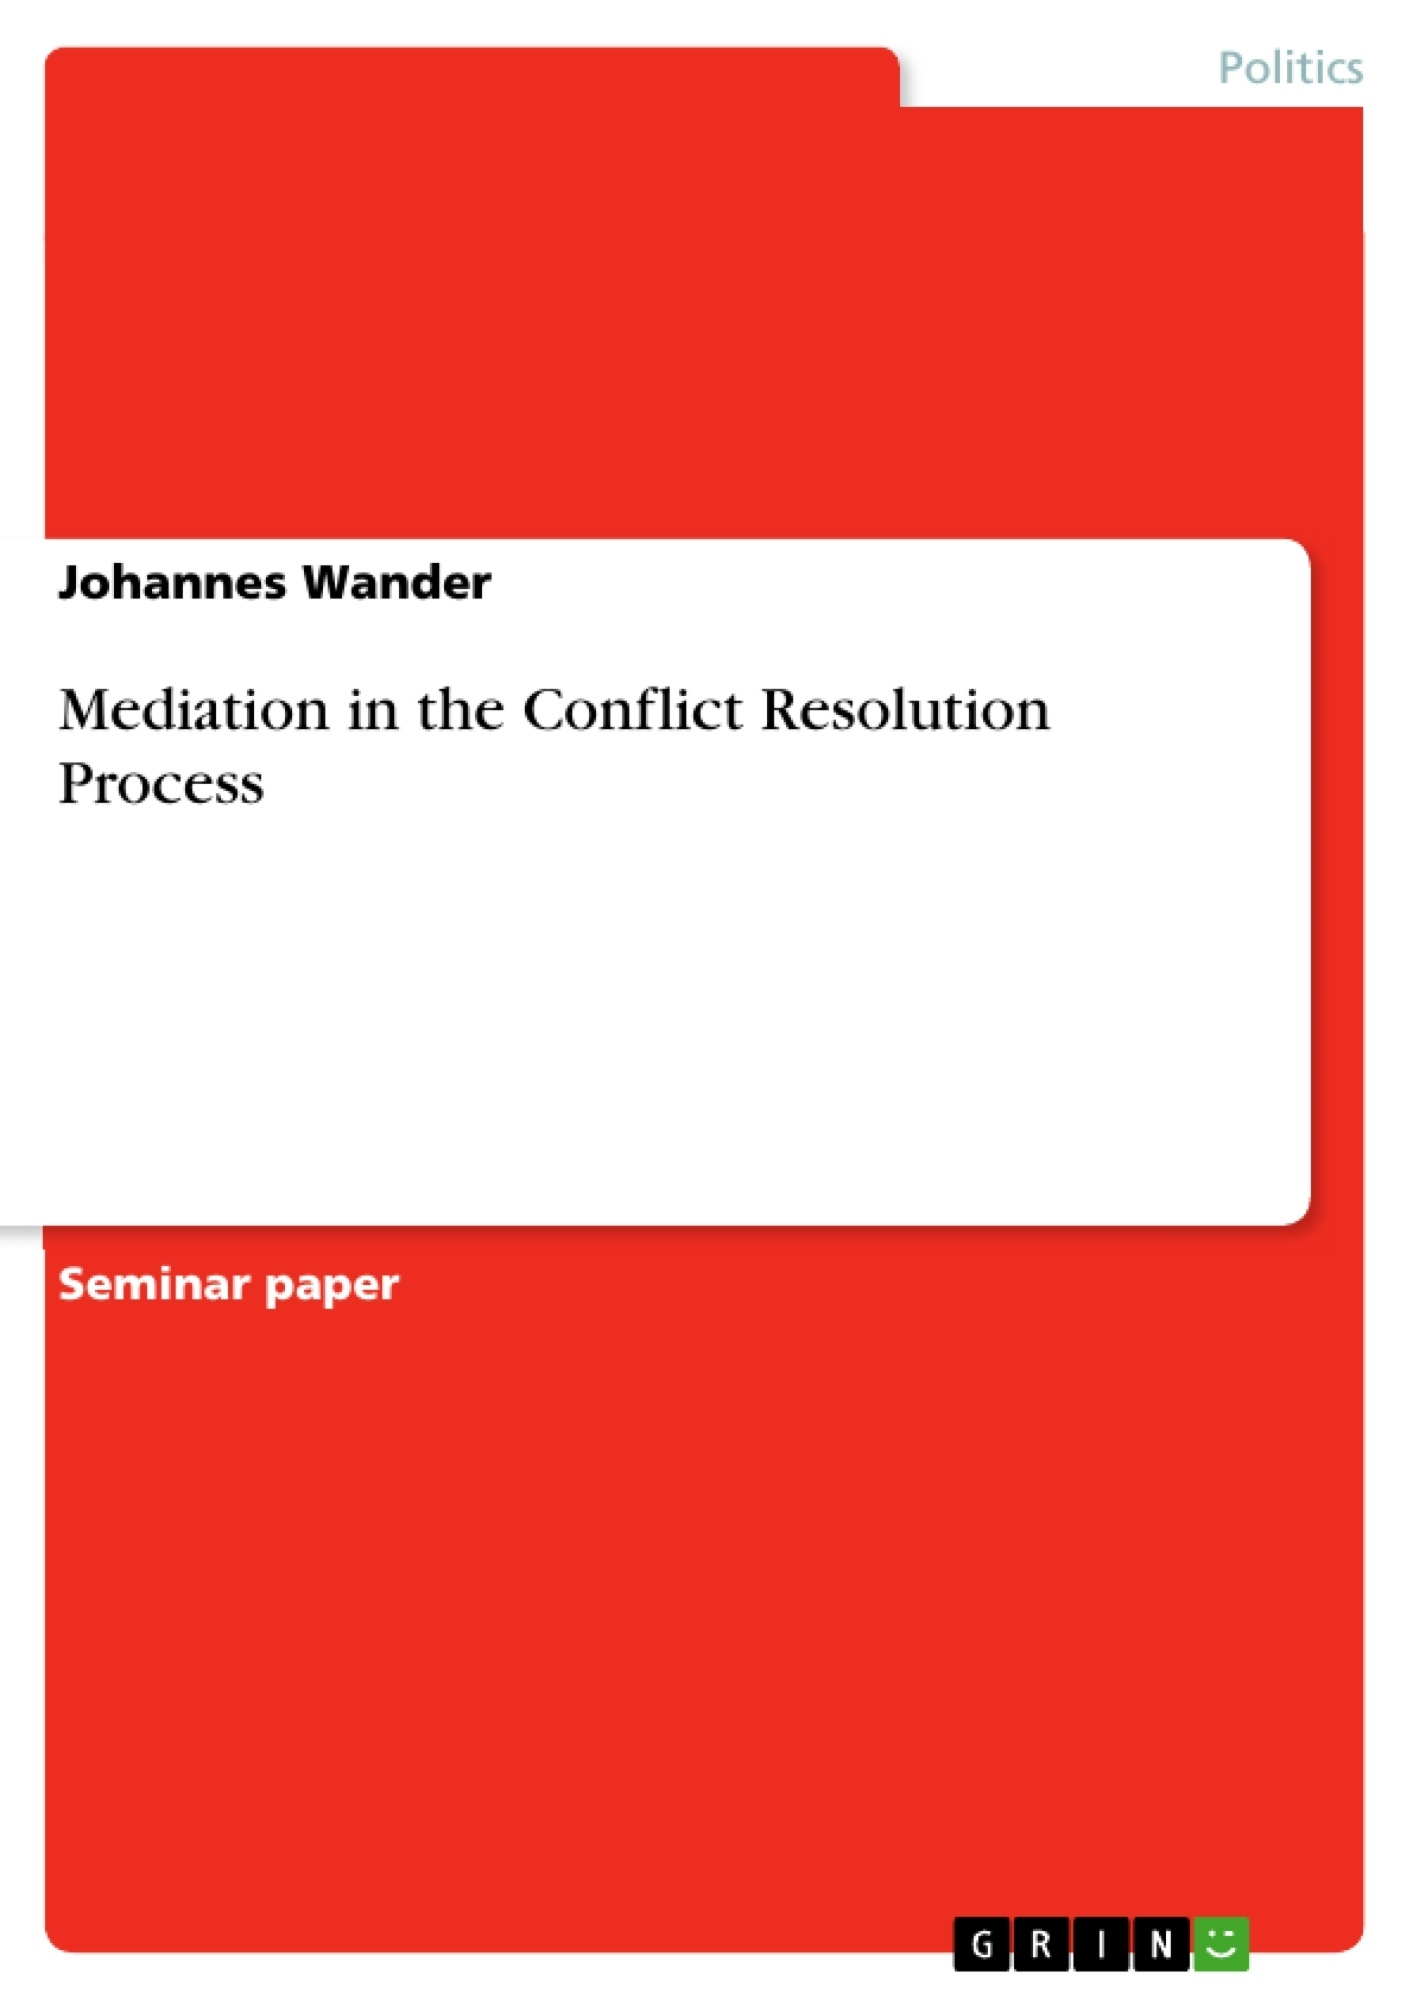 Title: Mediation in the Conflict Resolution Process